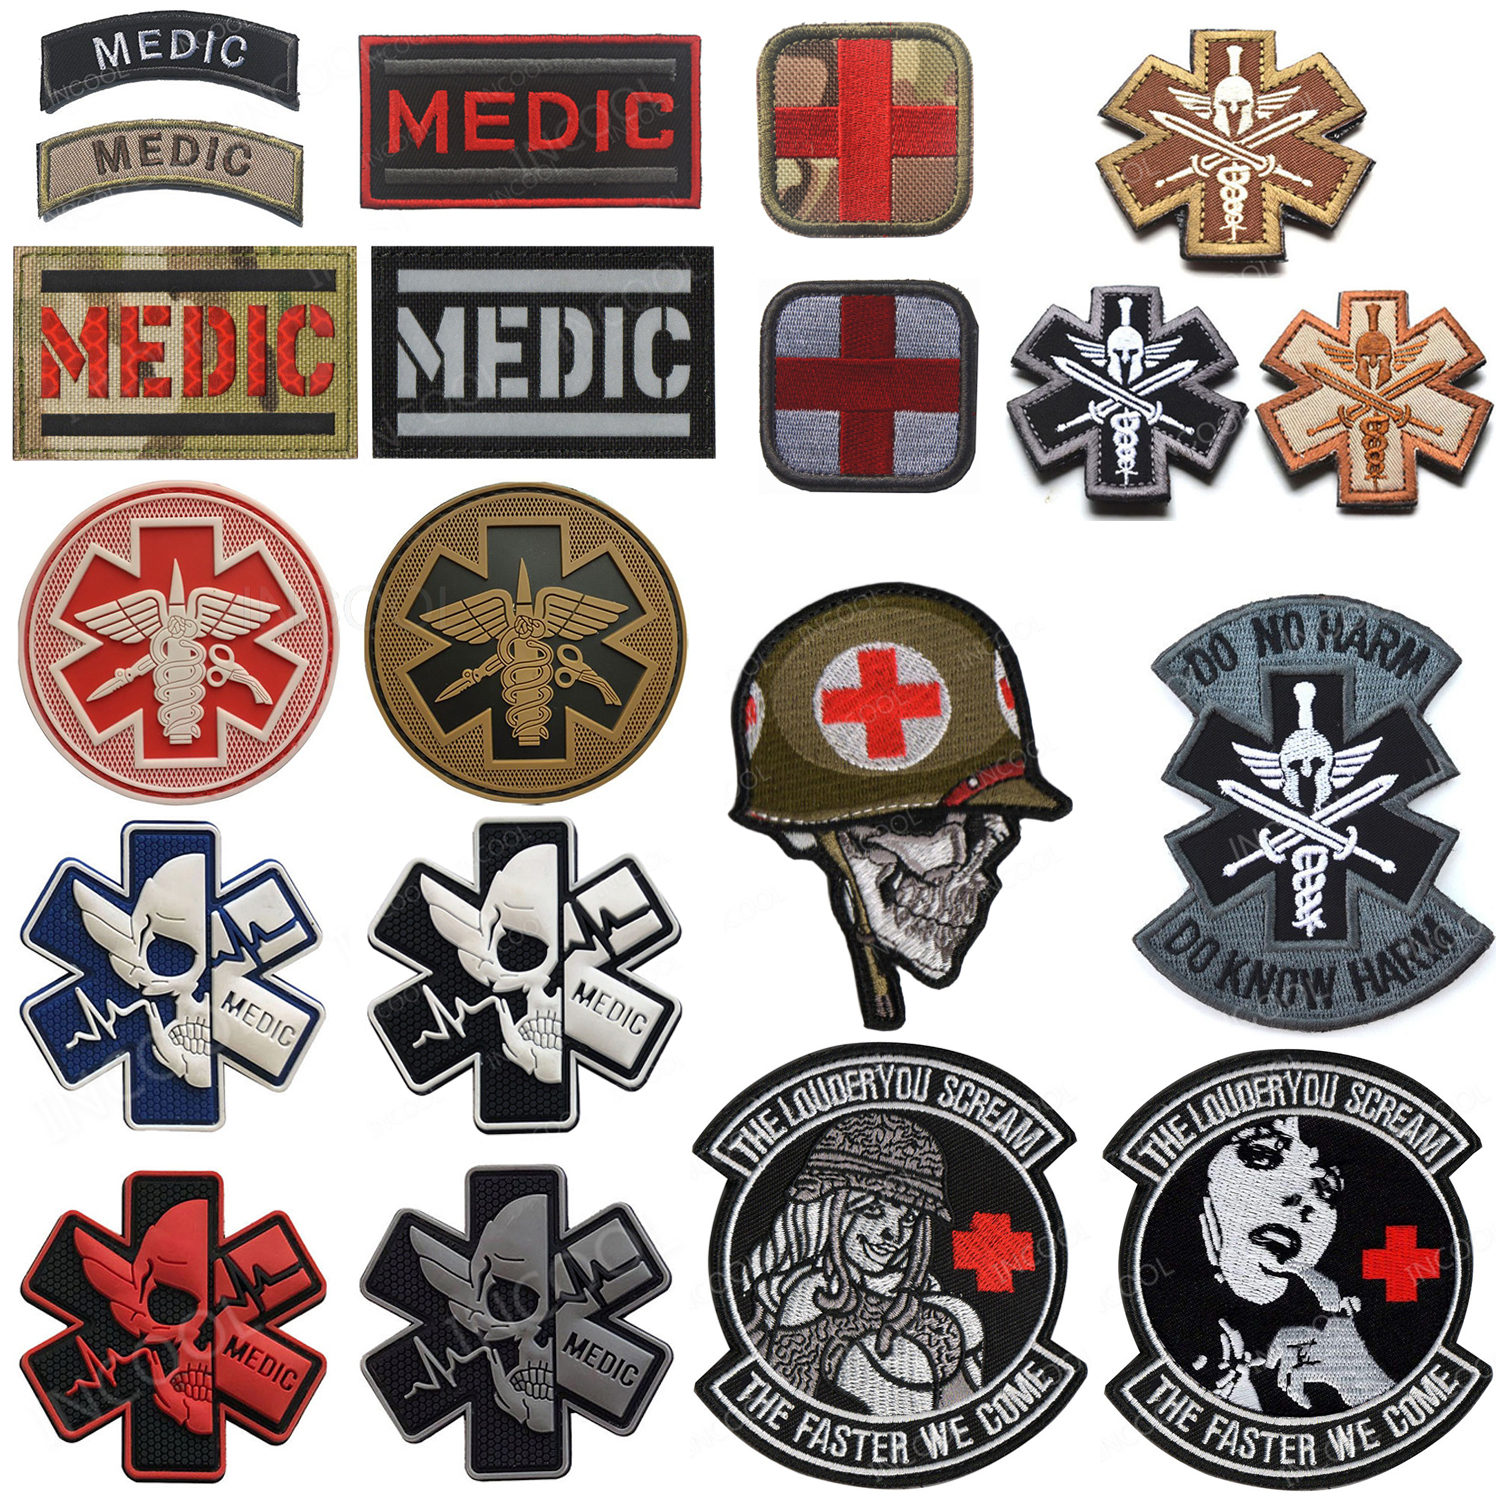 Embroidered Patches MEDIC Skull Tactical Military Patches PARAMEDIC Decorative Reflective Medical Cross Embroidery Badges